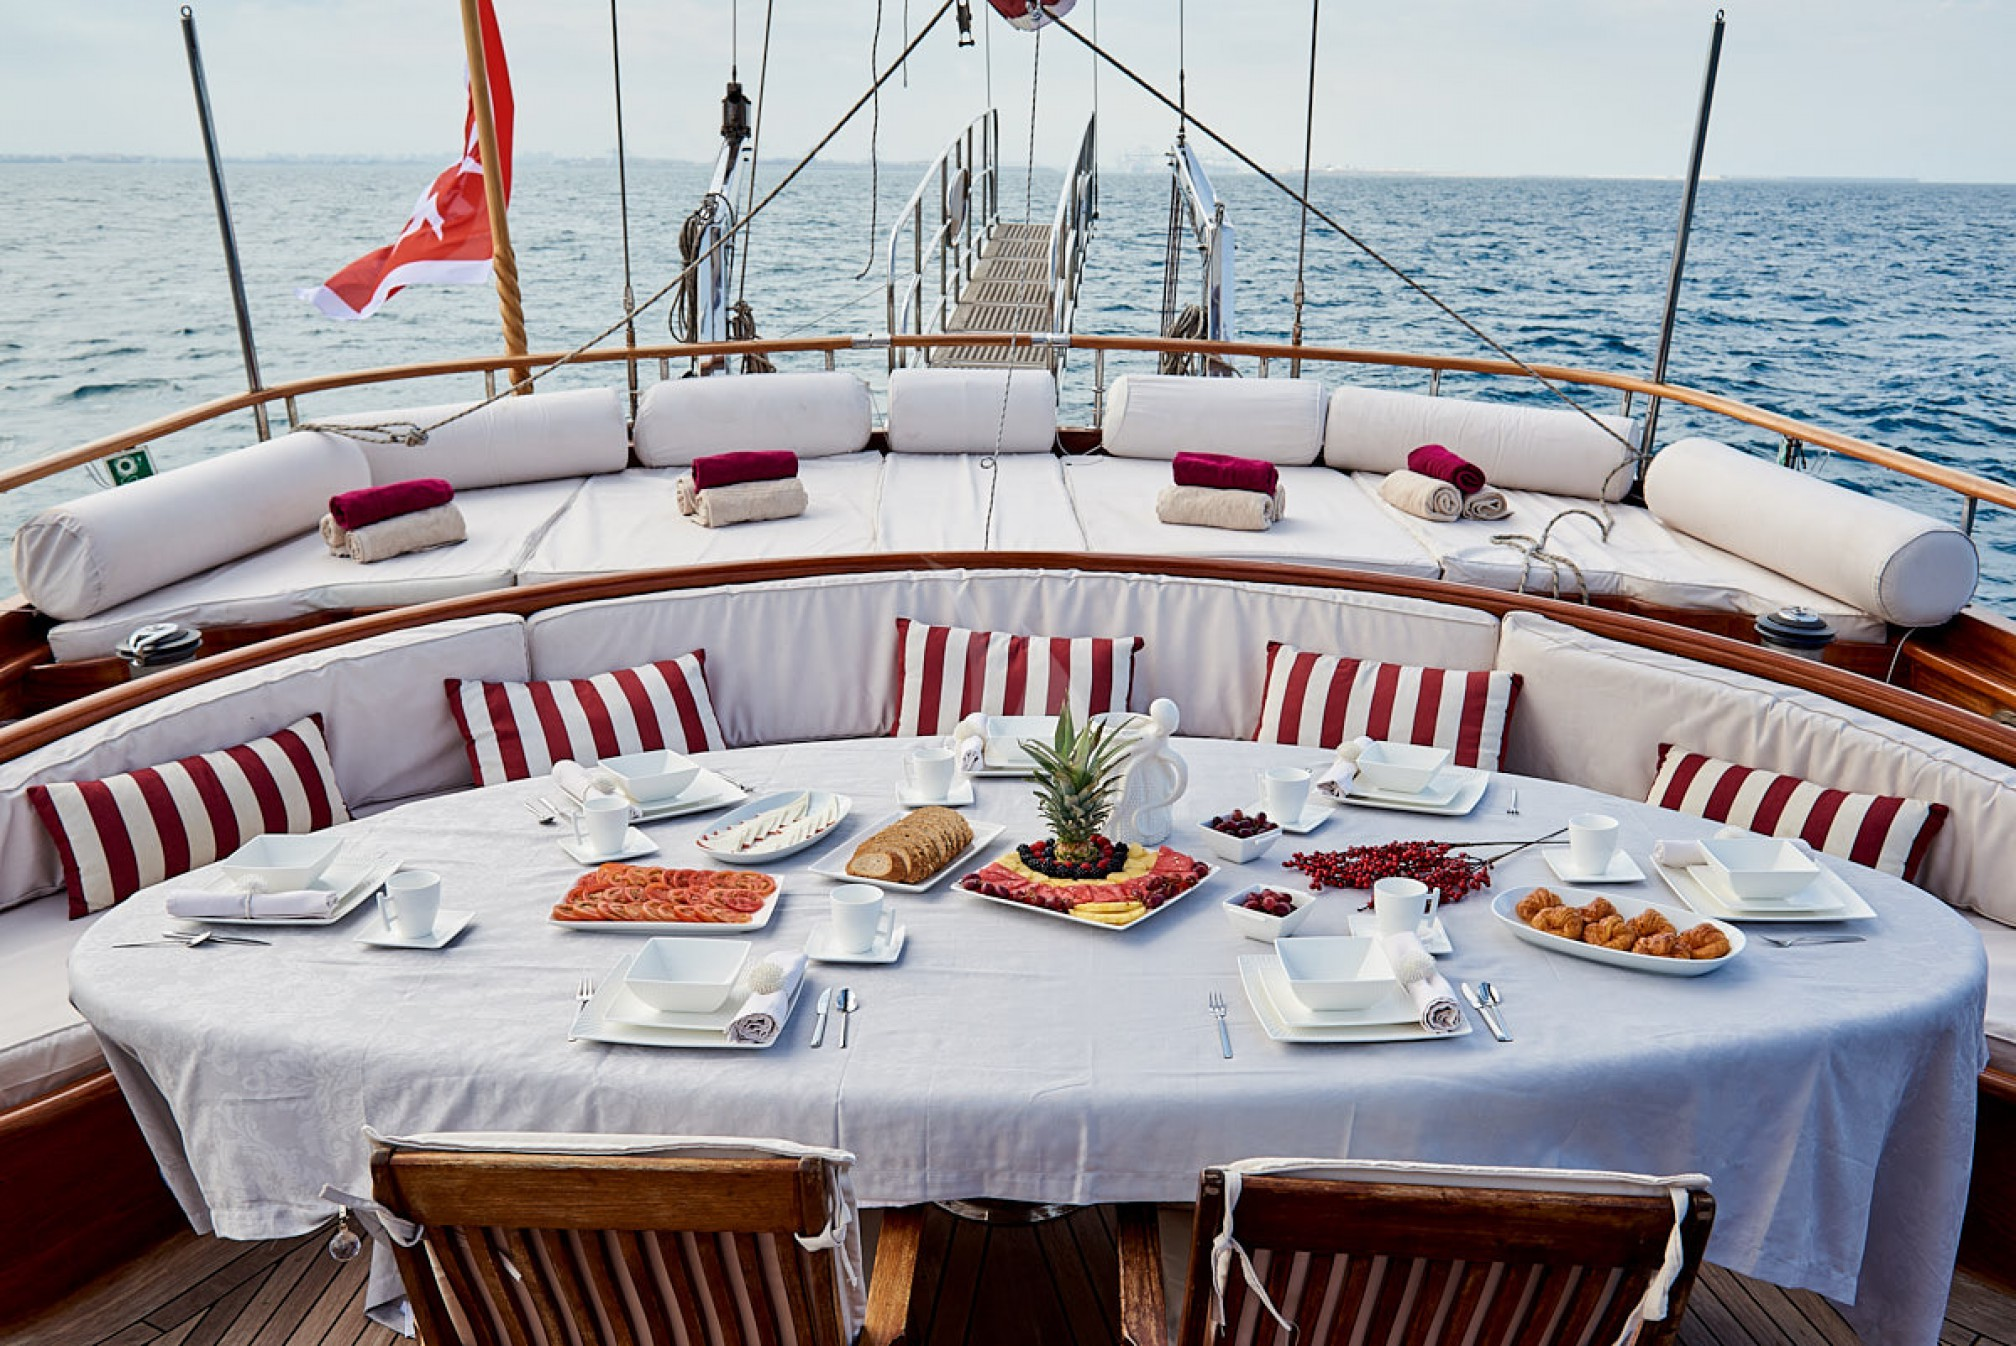 Queen of Karia Luxury - Gulet cruise in Turkey